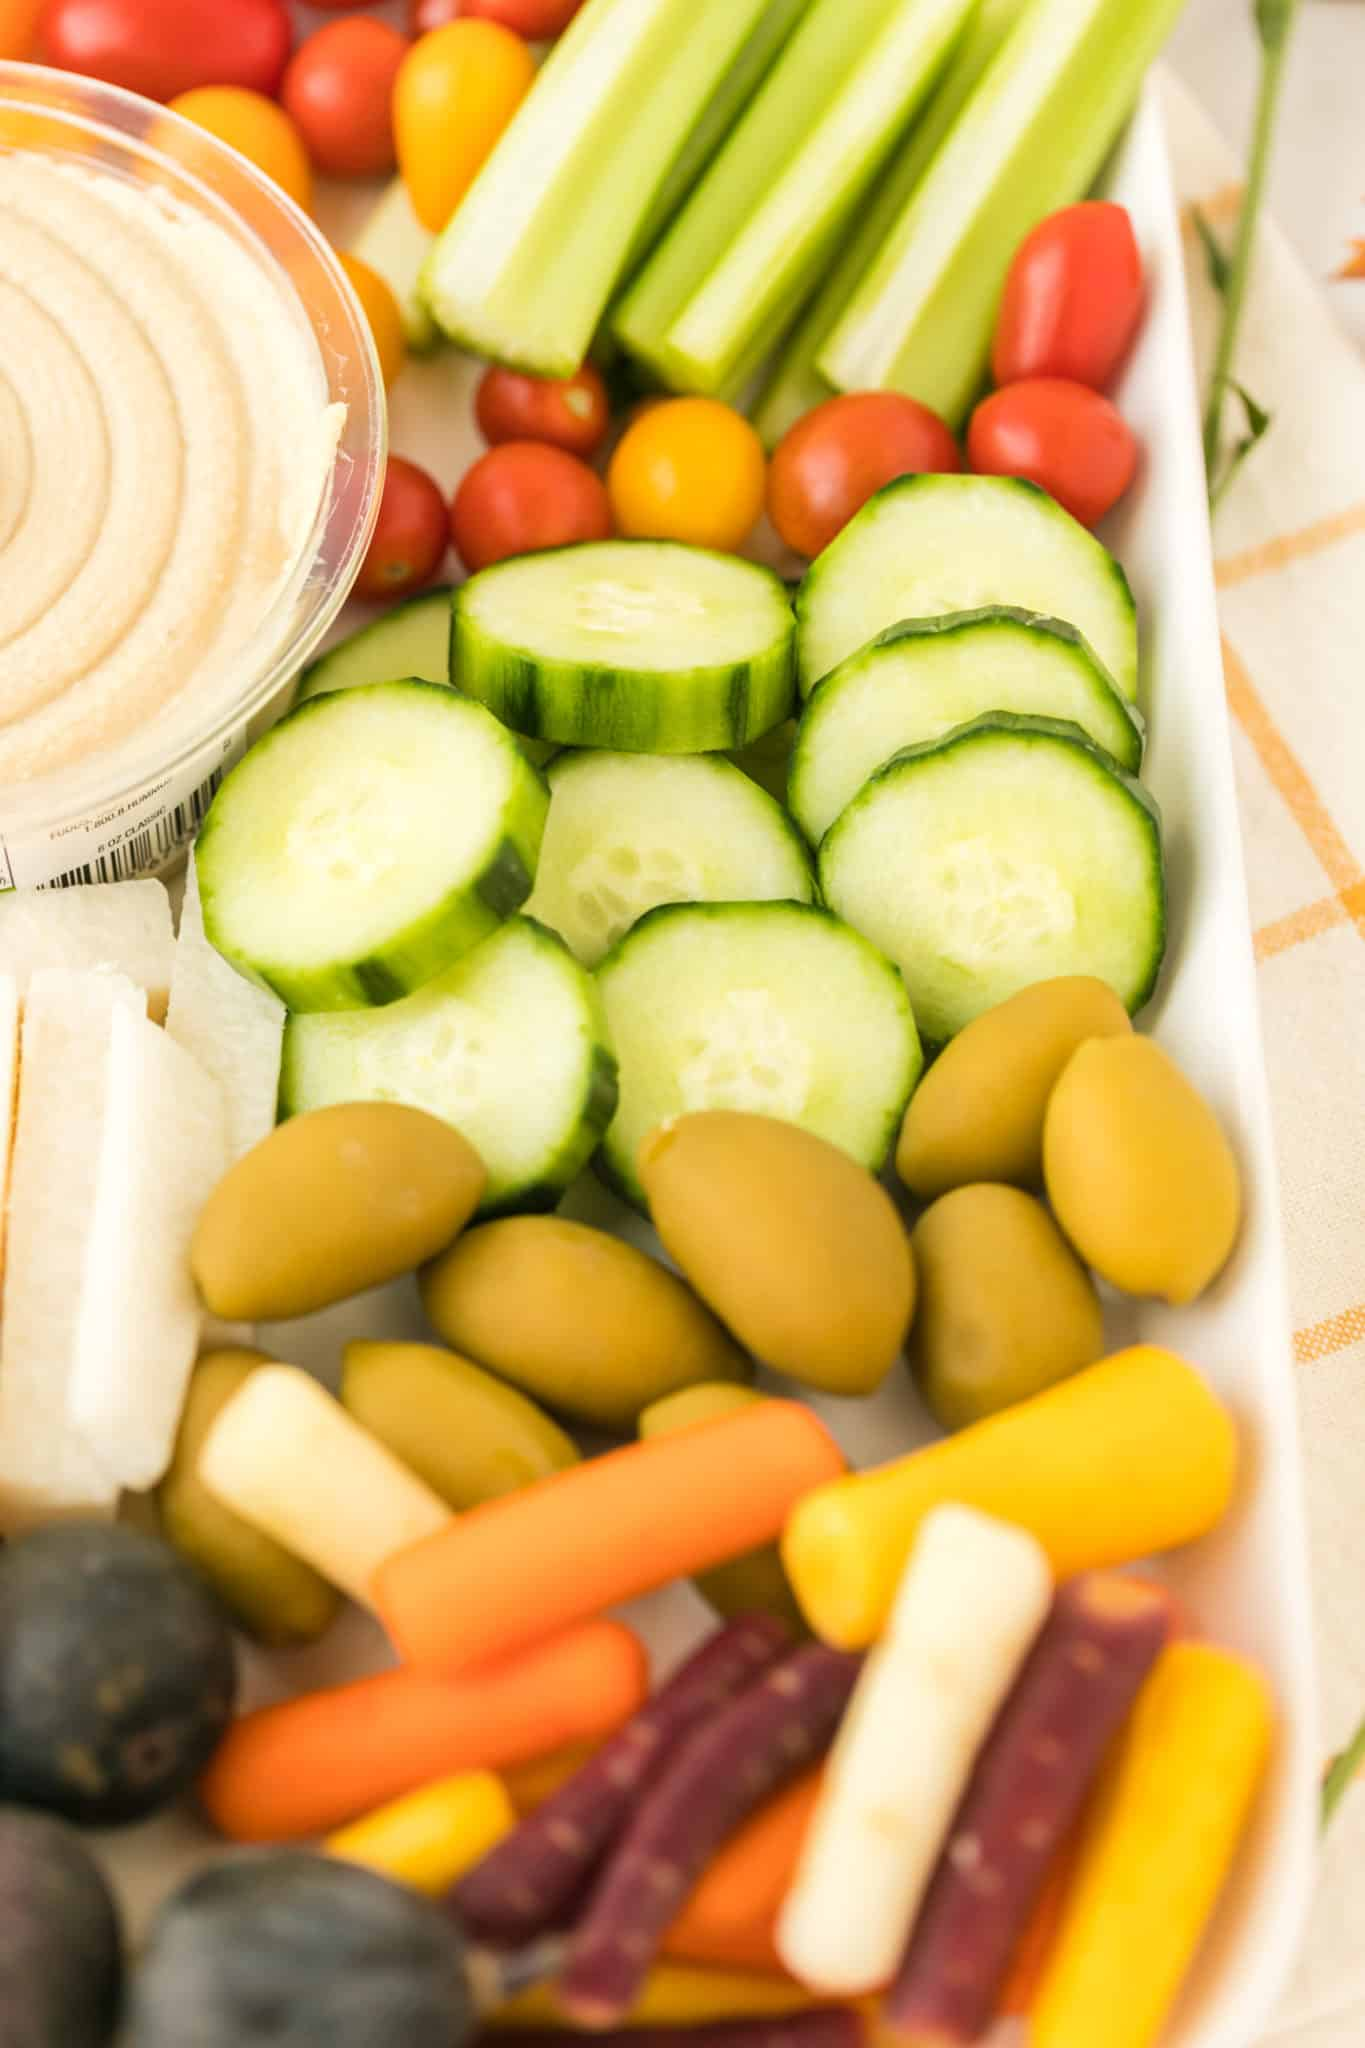 cucumber, olives, carrots, and more on a vegetable plate